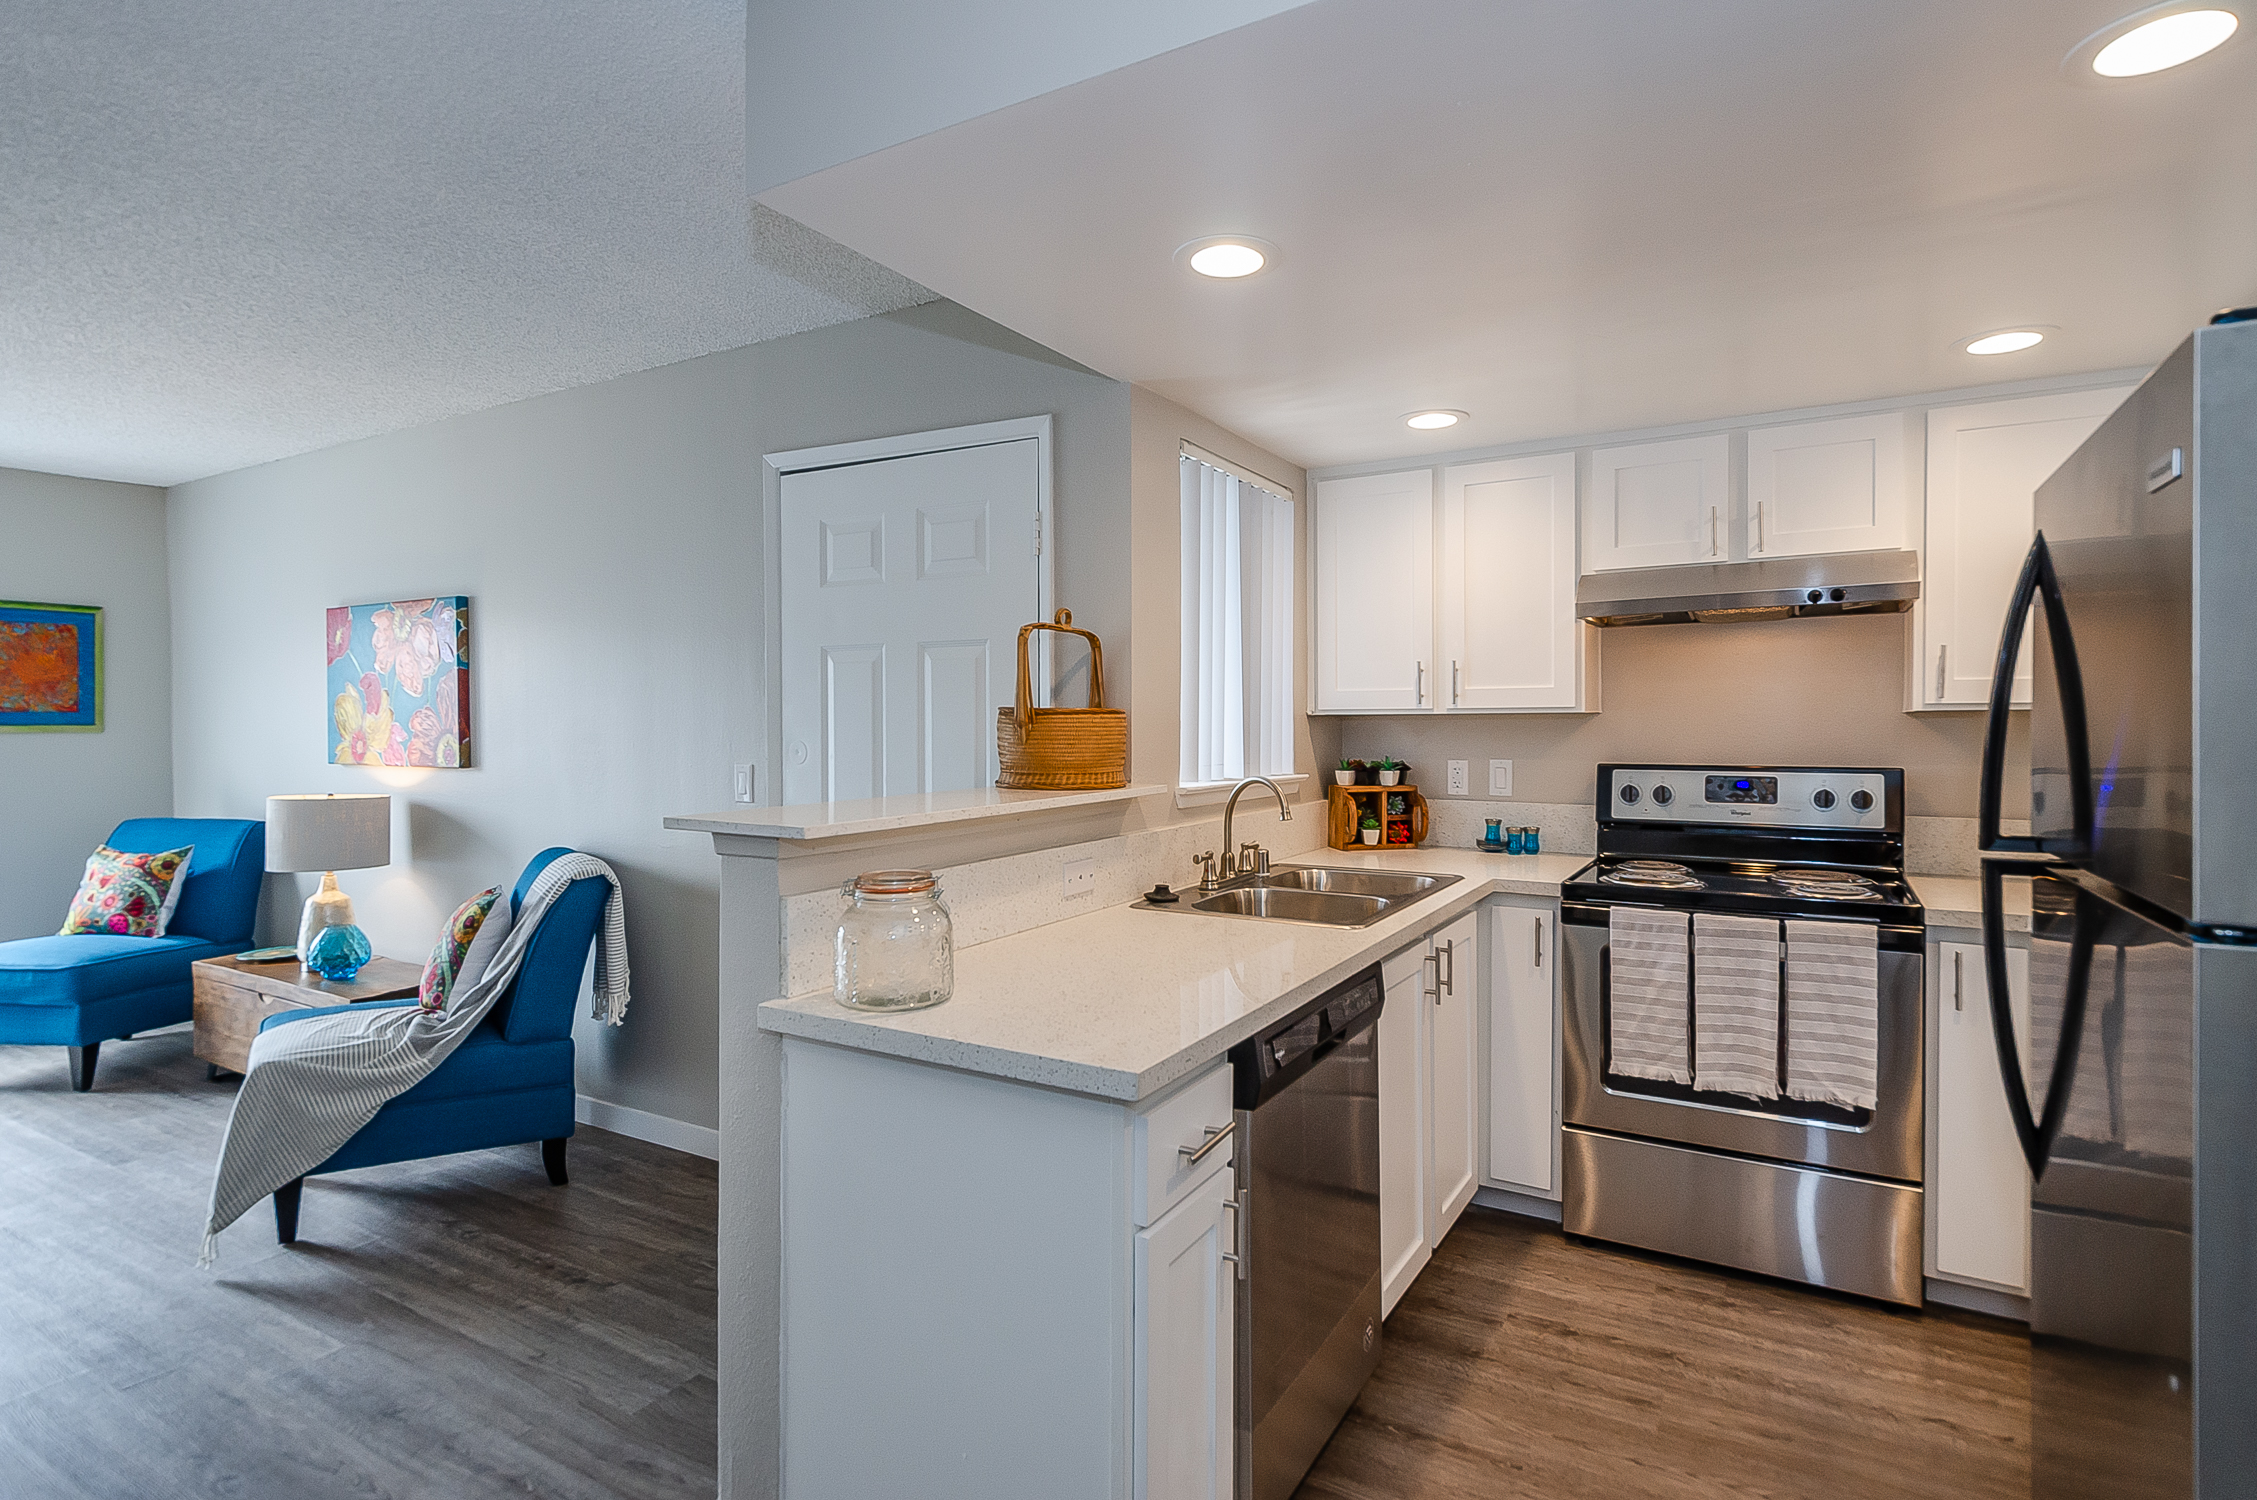 kitchen with recessed lights, dishwasher and stainless appliances opens to dining and living areas